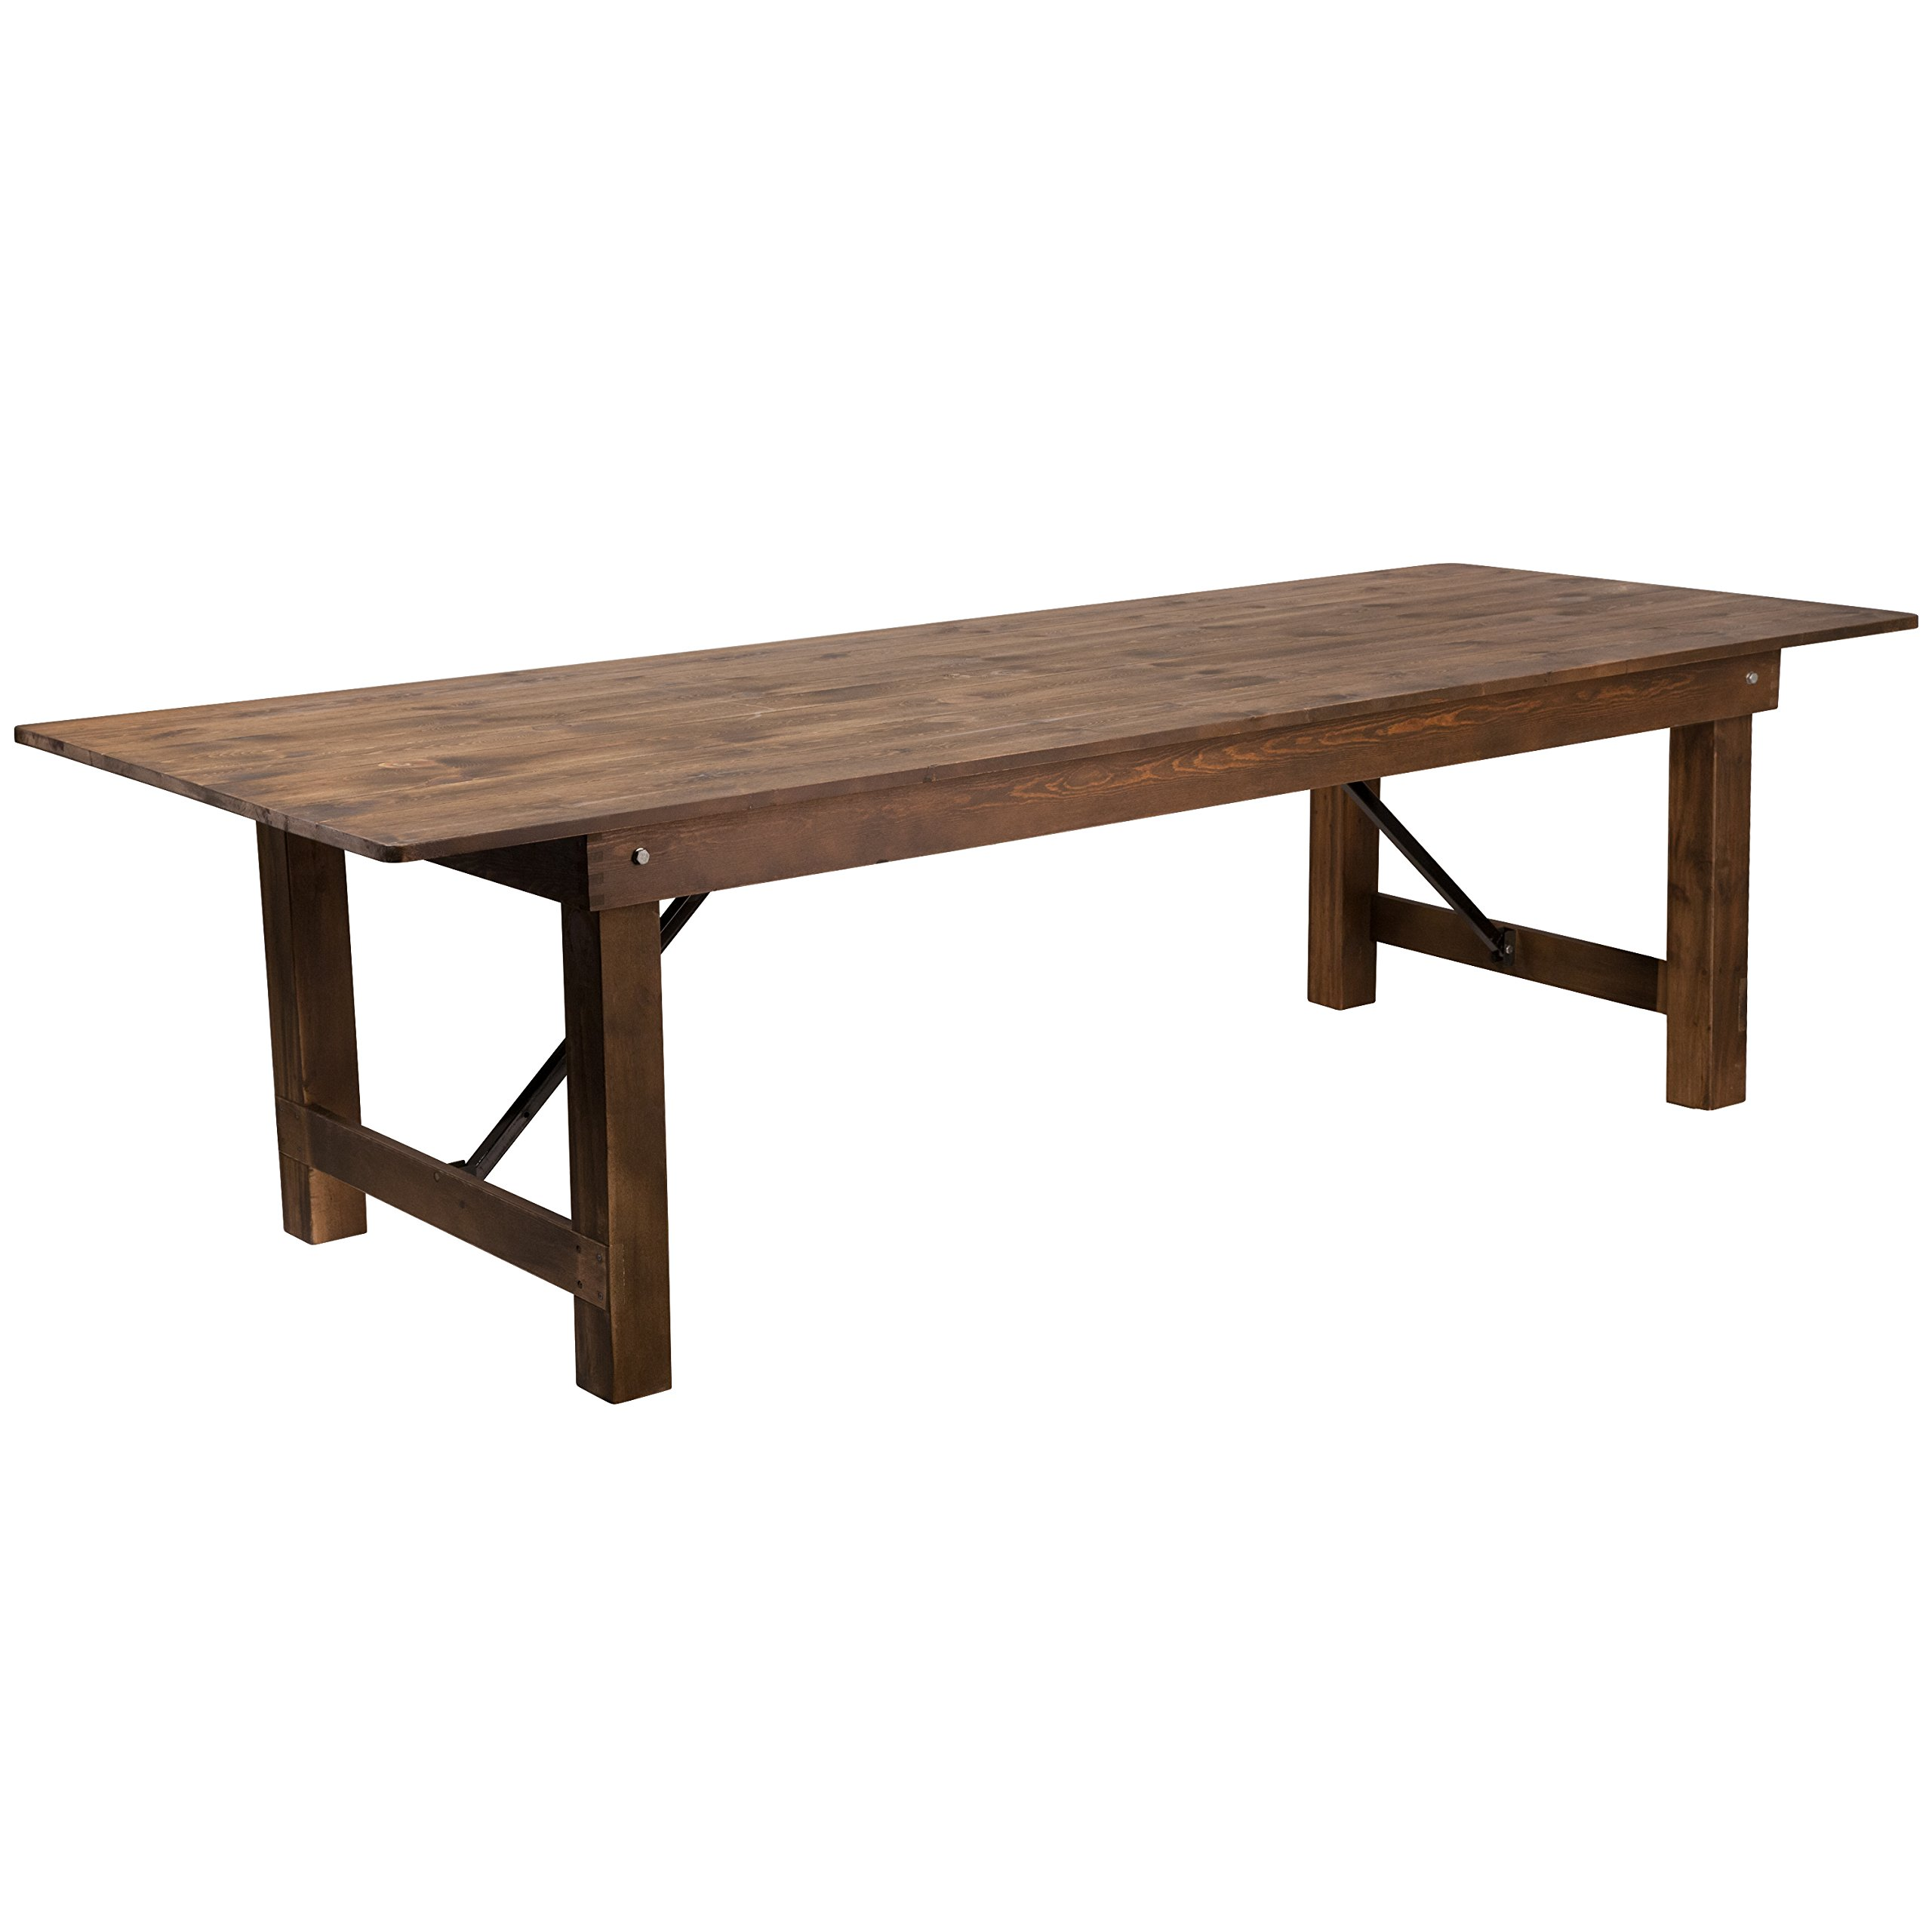 Flash Furniture HERCULES Series 9' x 40'' Antique Rustic Solid Pine Folding Farm Table by Flash Furniture (Image #1)